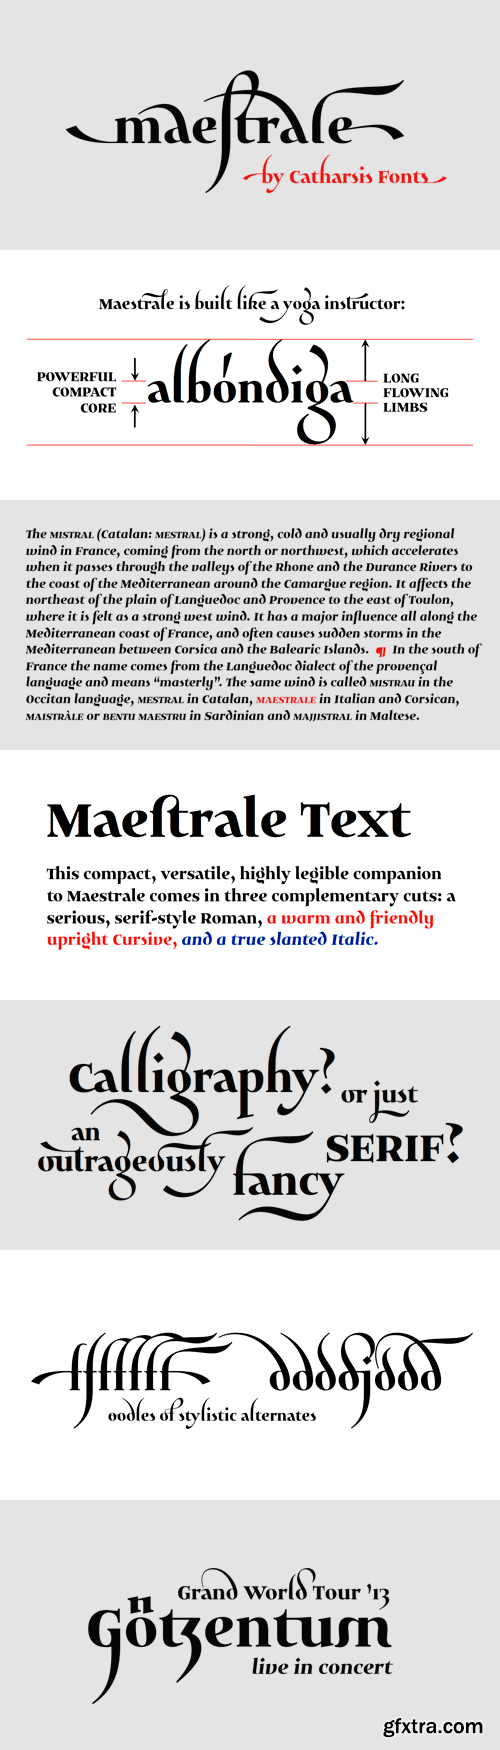 Maestrale Font Family - 5 Fonts for $60